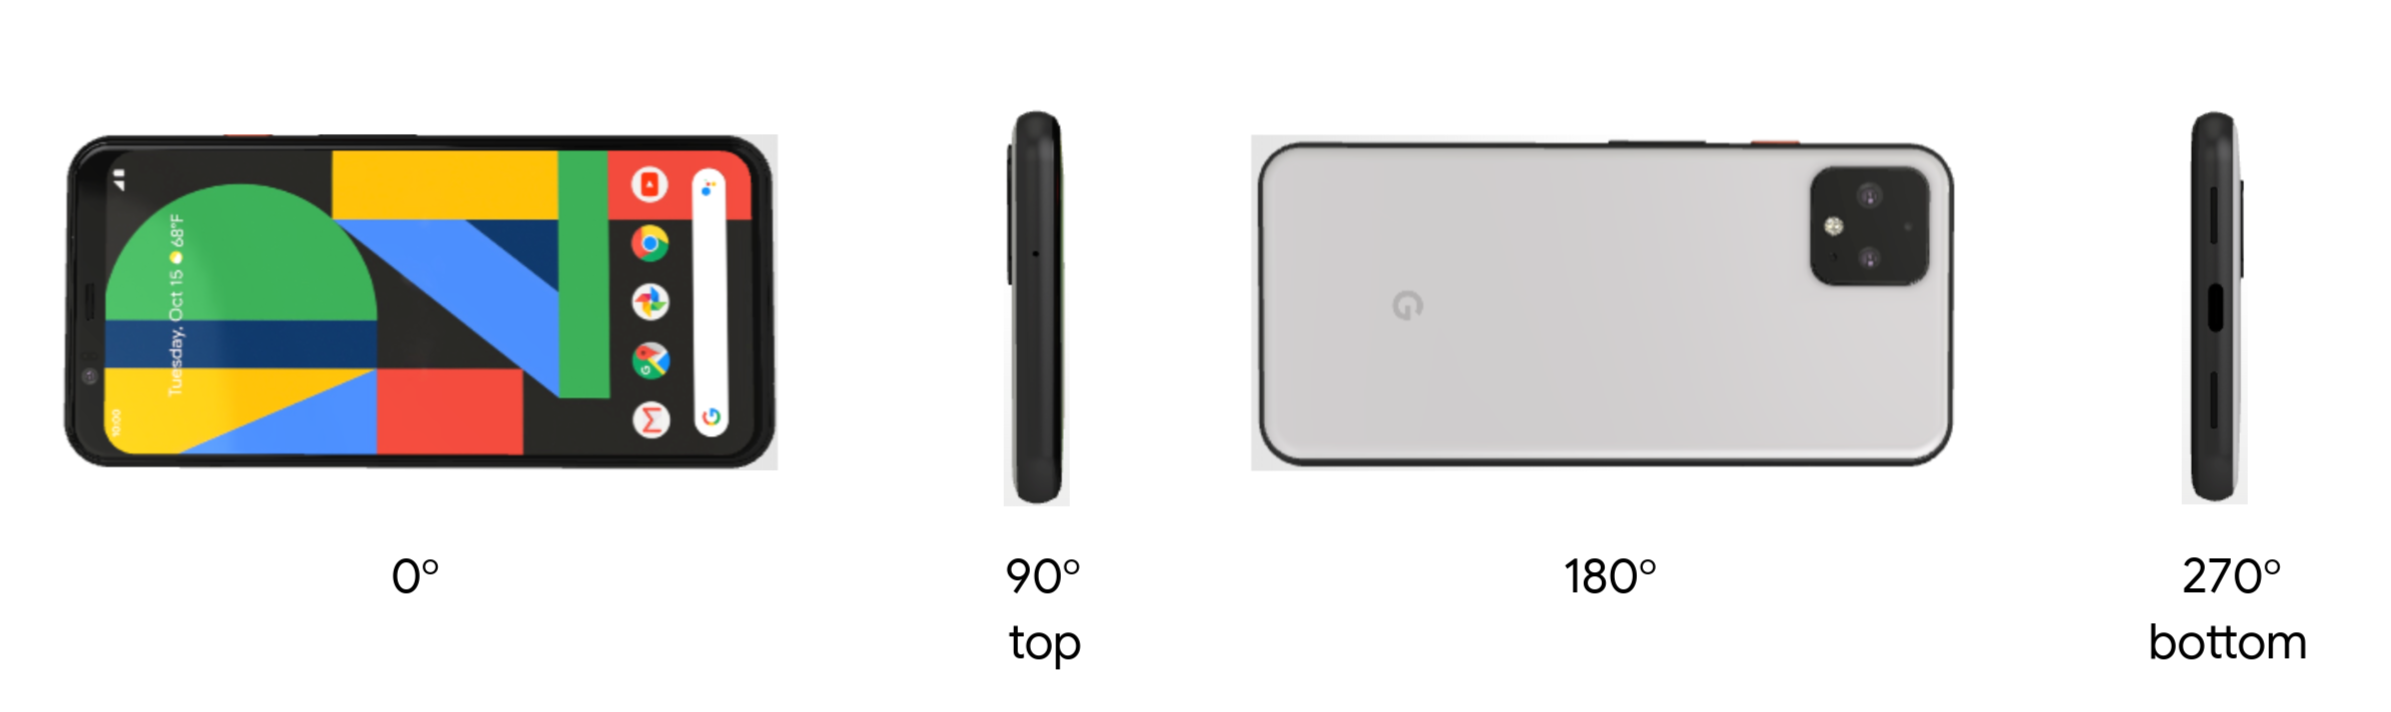 Photo that shows device at various degrees of rotation (landscape)